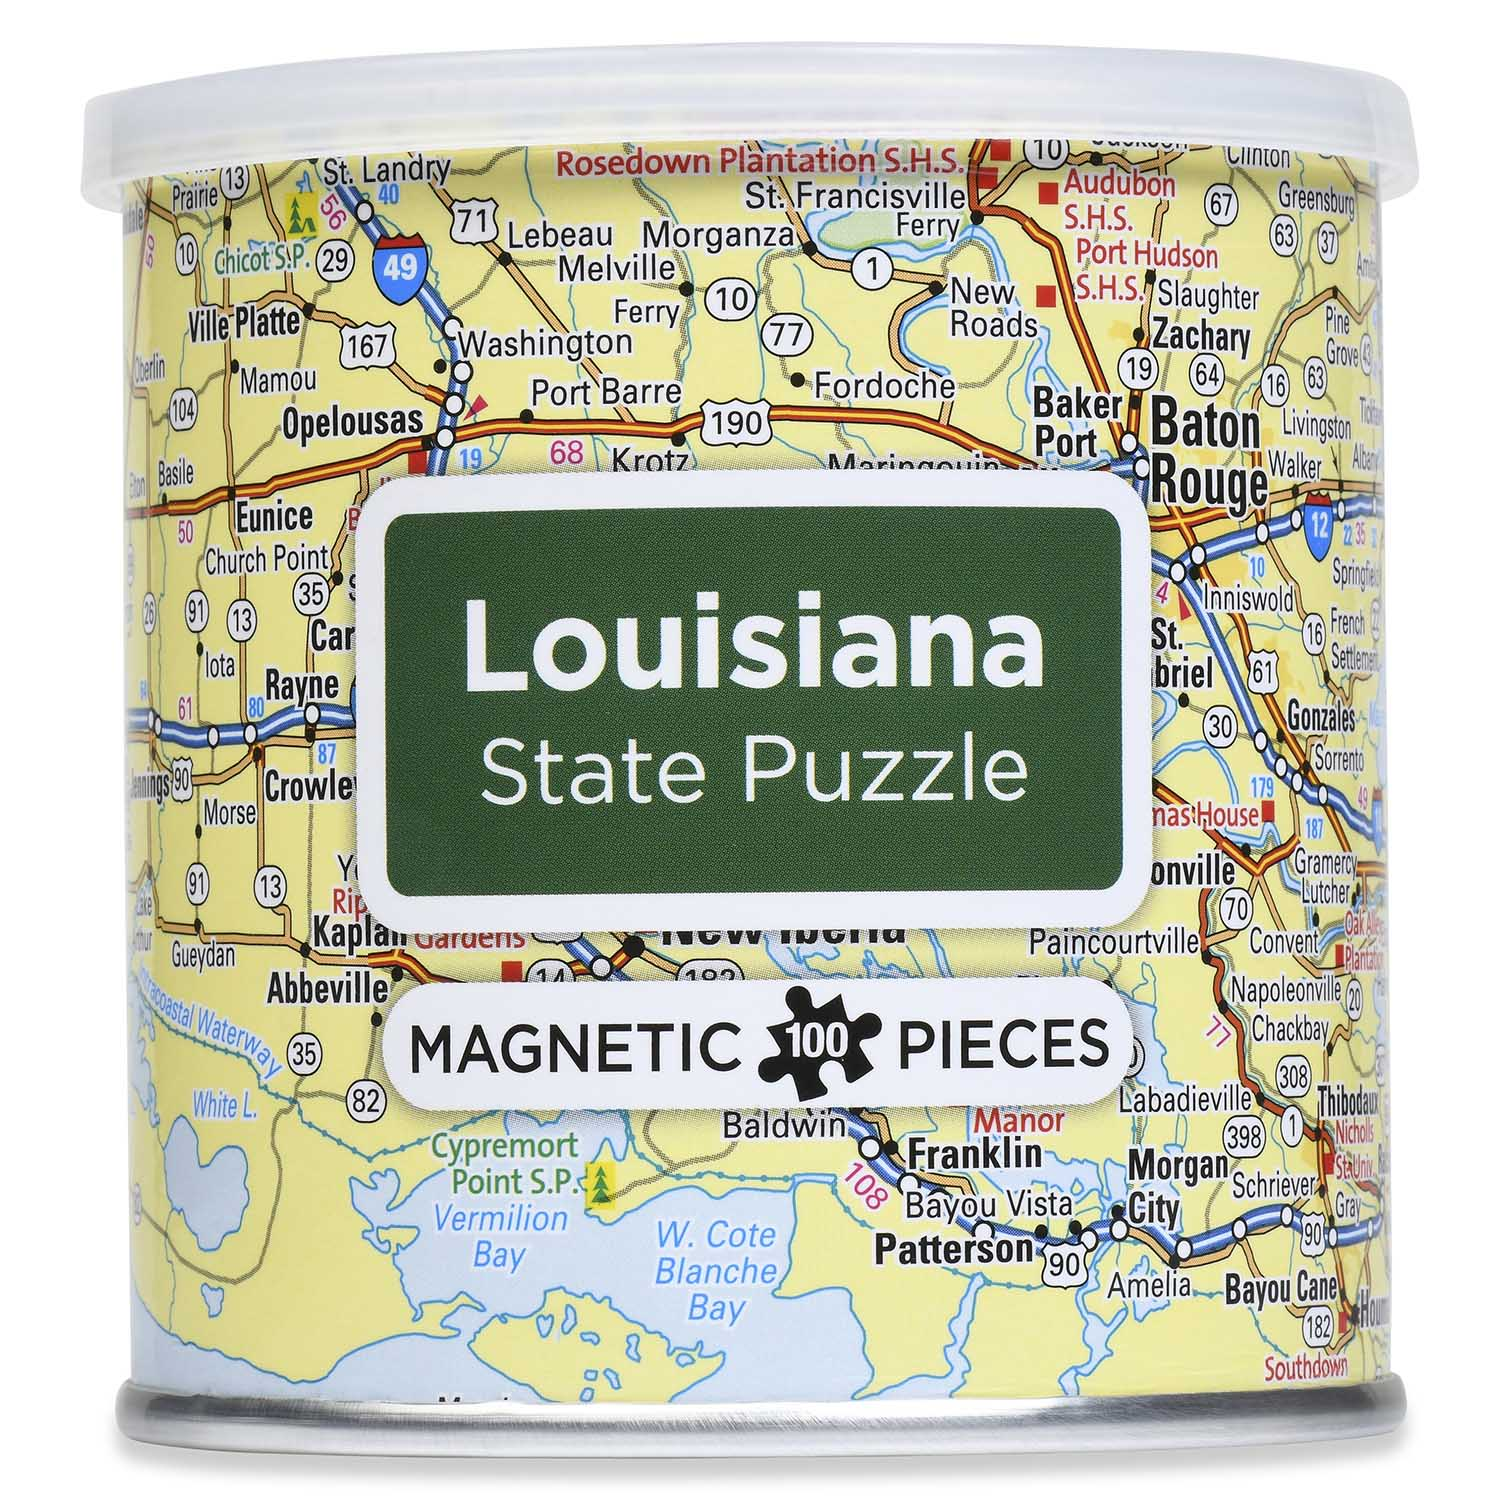 City Magnetic Puzzle Louisiana Cities Jigsaw Puzzle